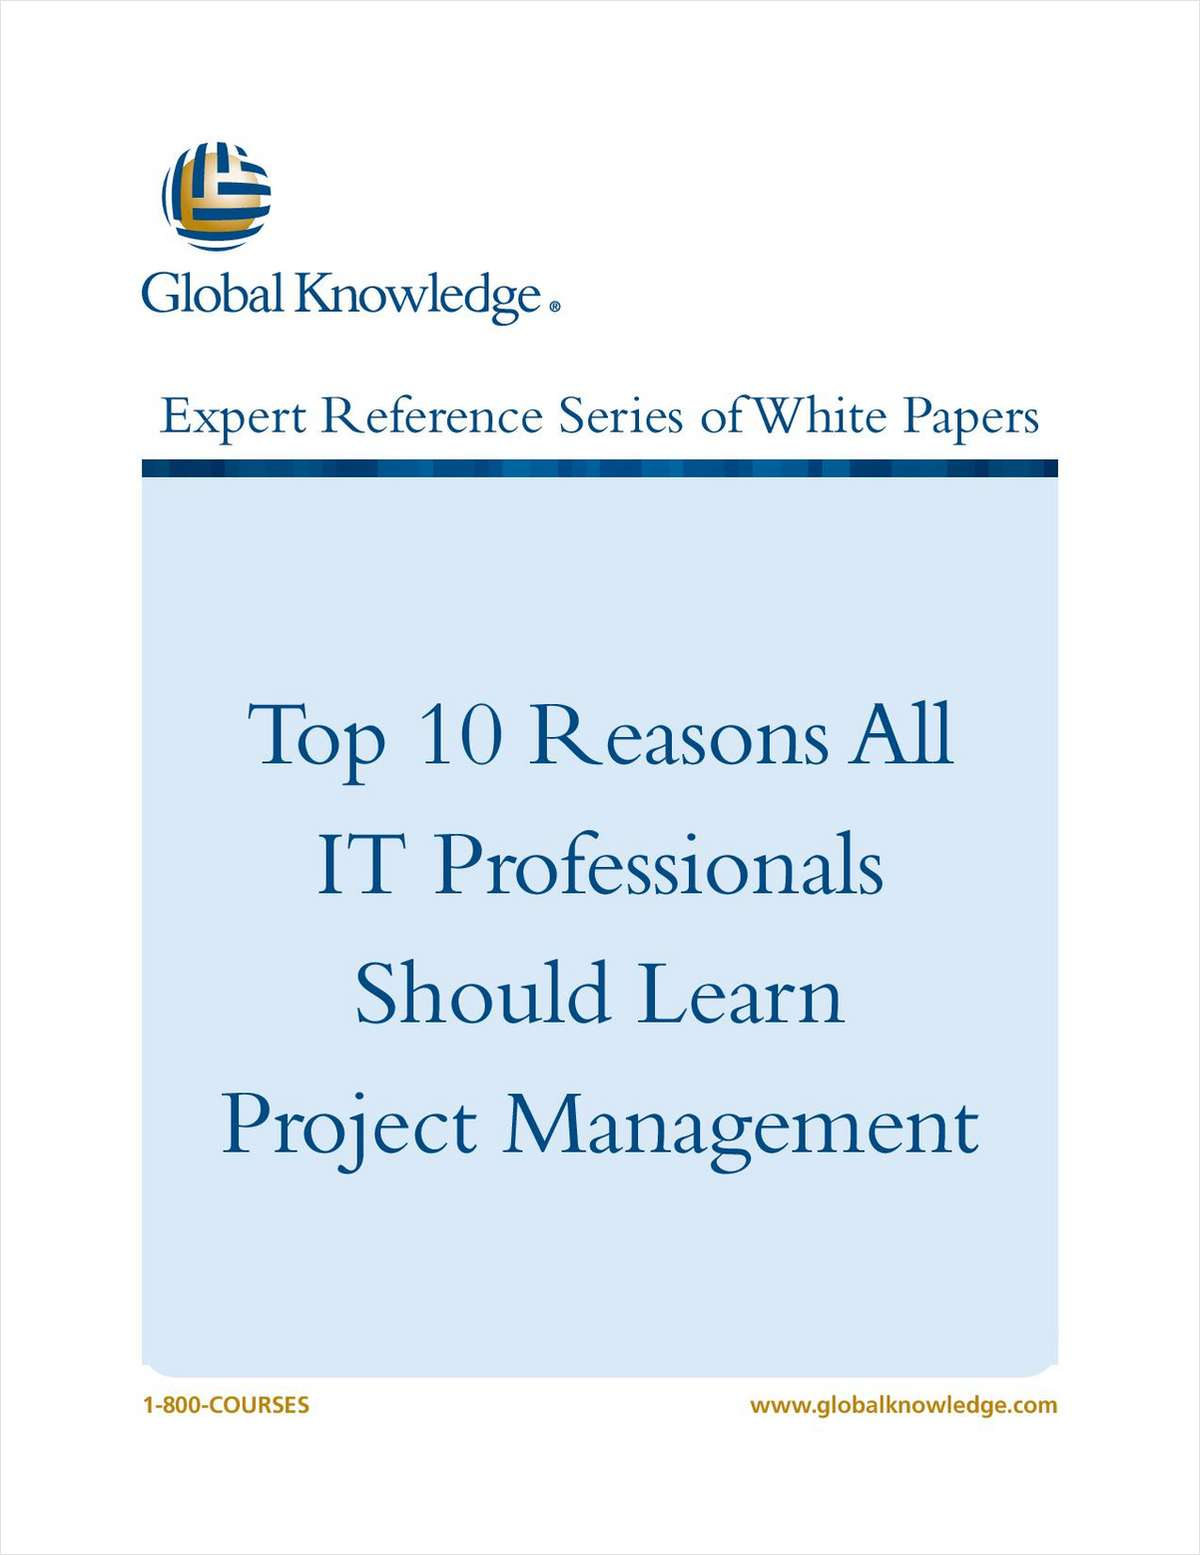 The Top 10 Reasons all IT Professionals Should Learn Project Management